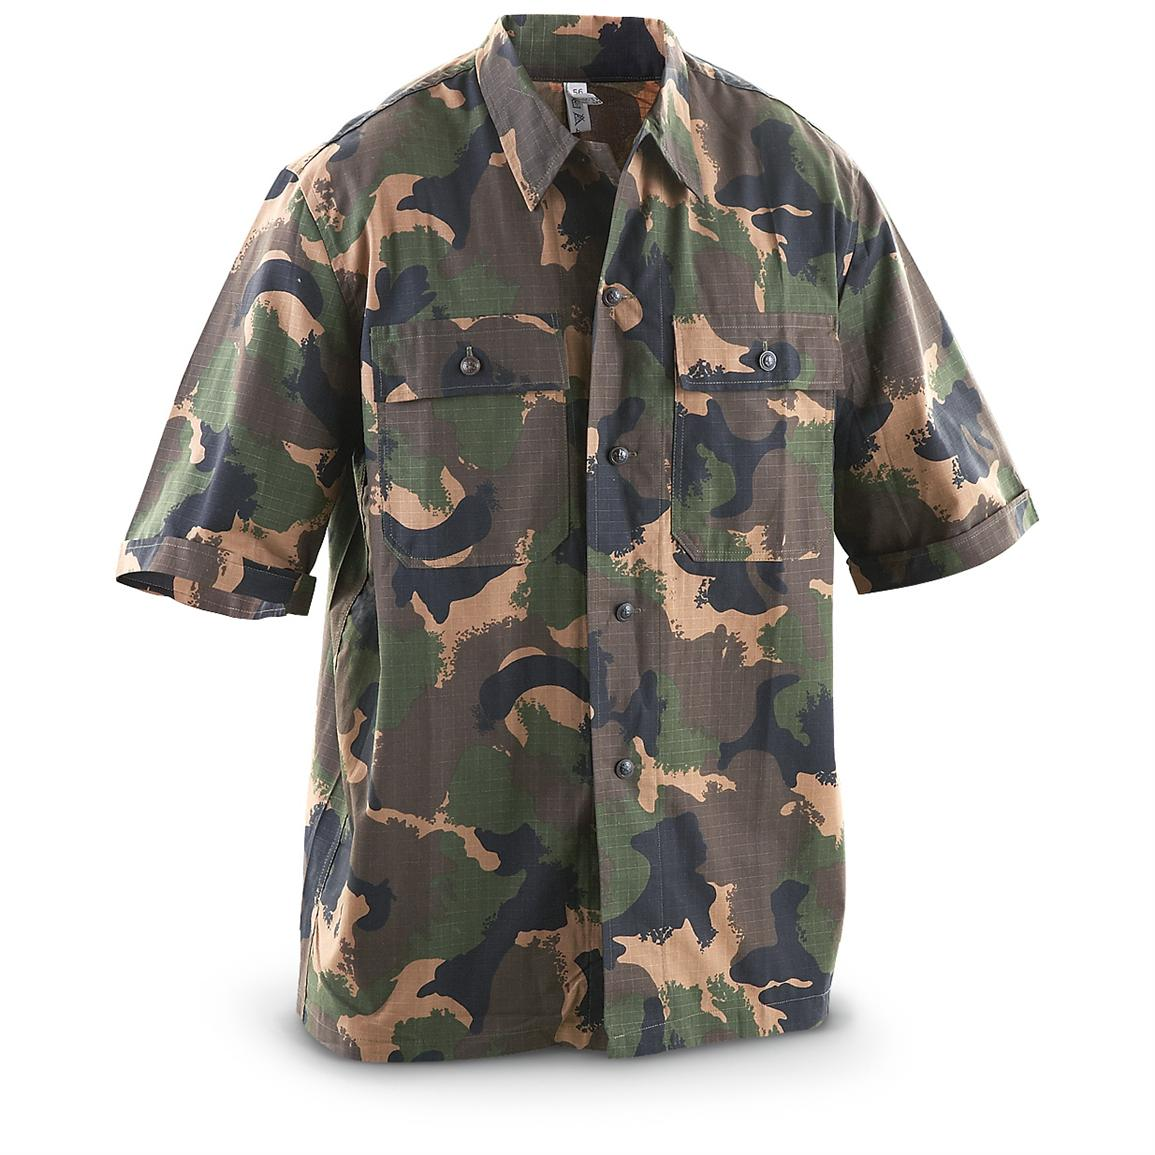 New Hungarian Military Surplus Short-sleeved Ripstop Shirt, Woodland Camo